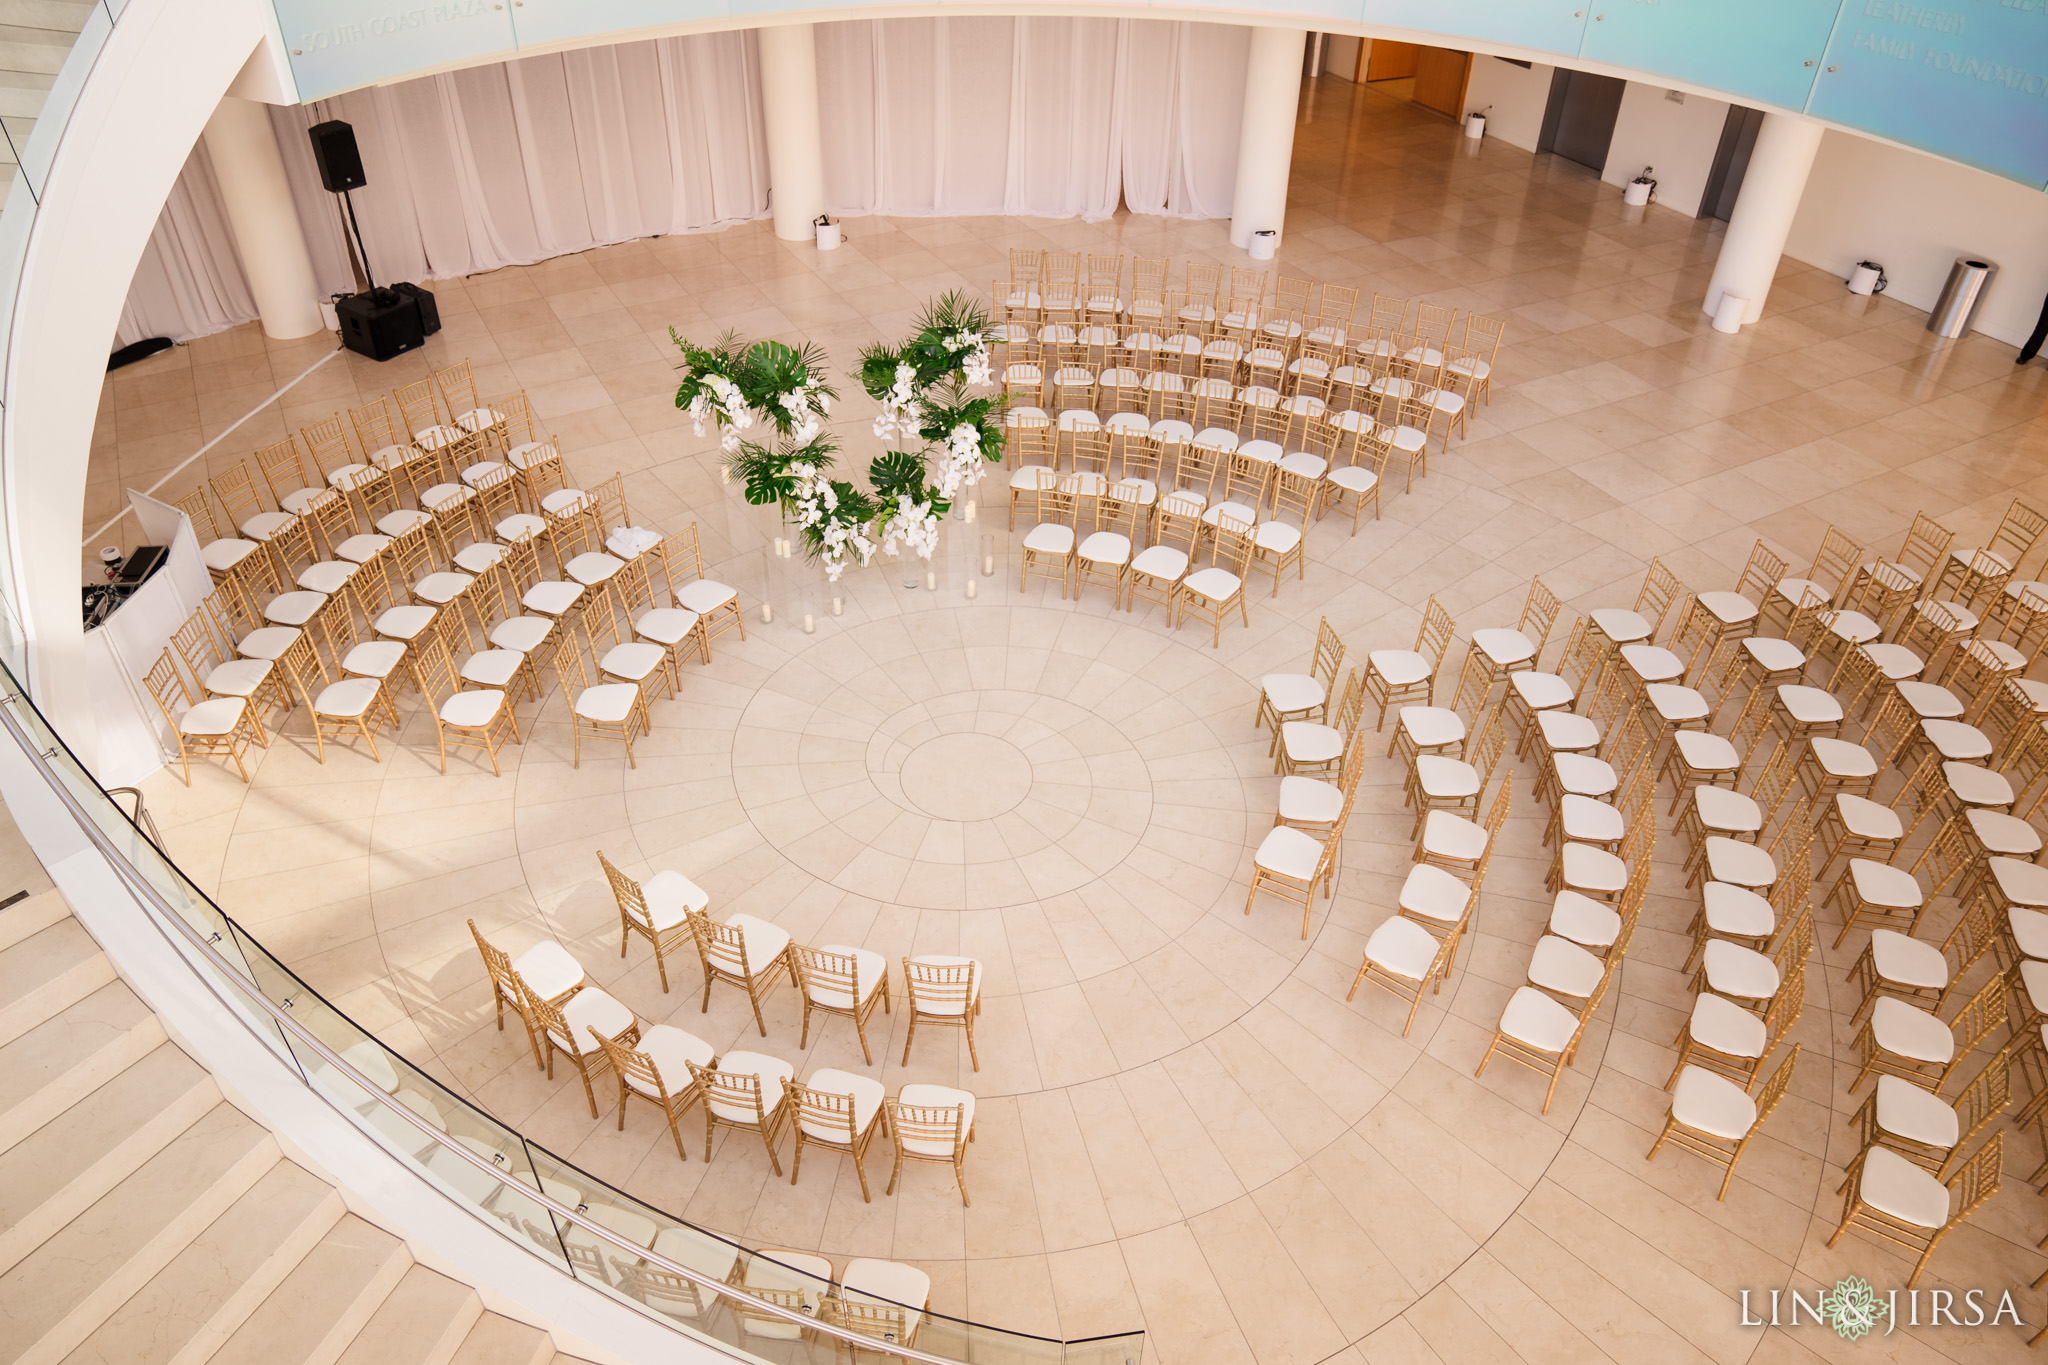 21 segerstrom center for the arts costa mesa wedding photography